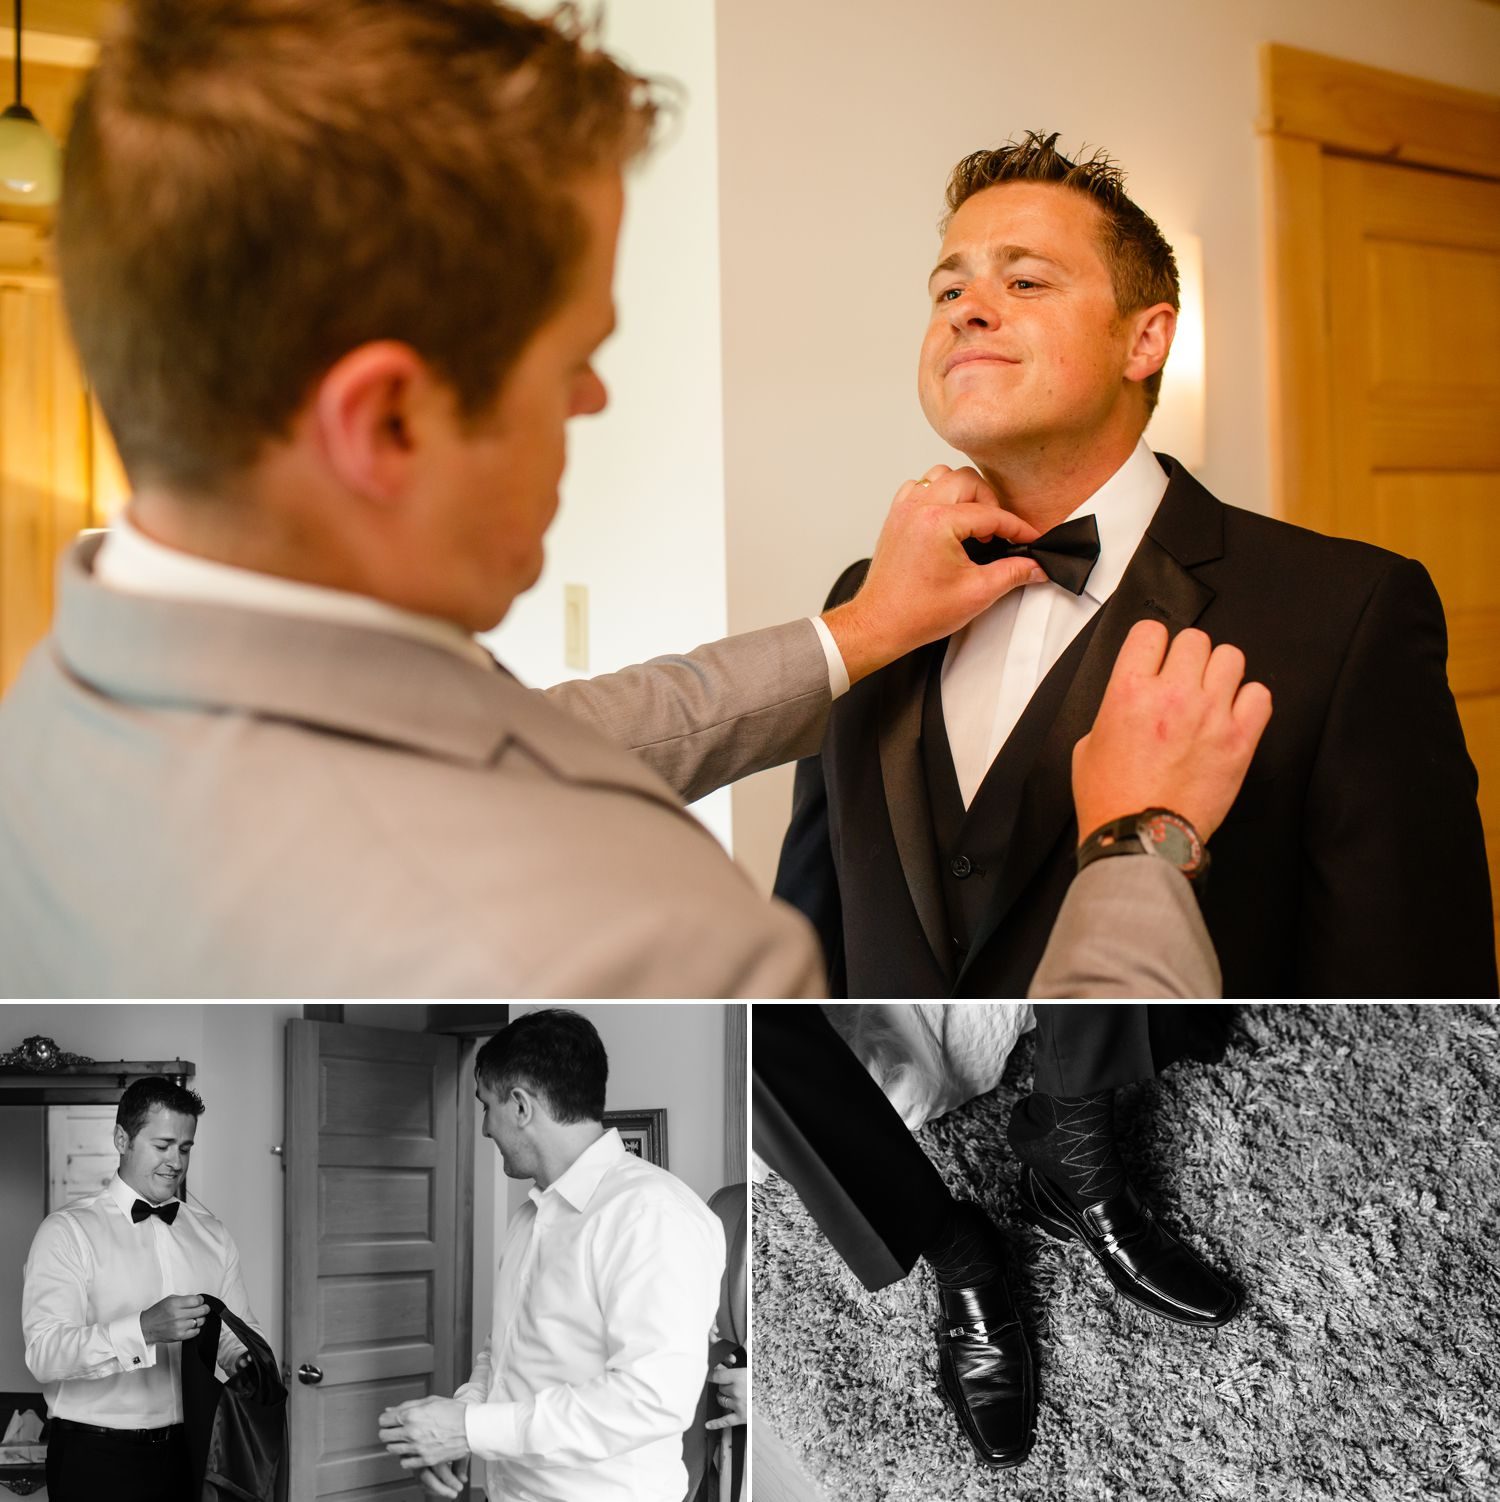 Groom getting ready at Le Belvedere